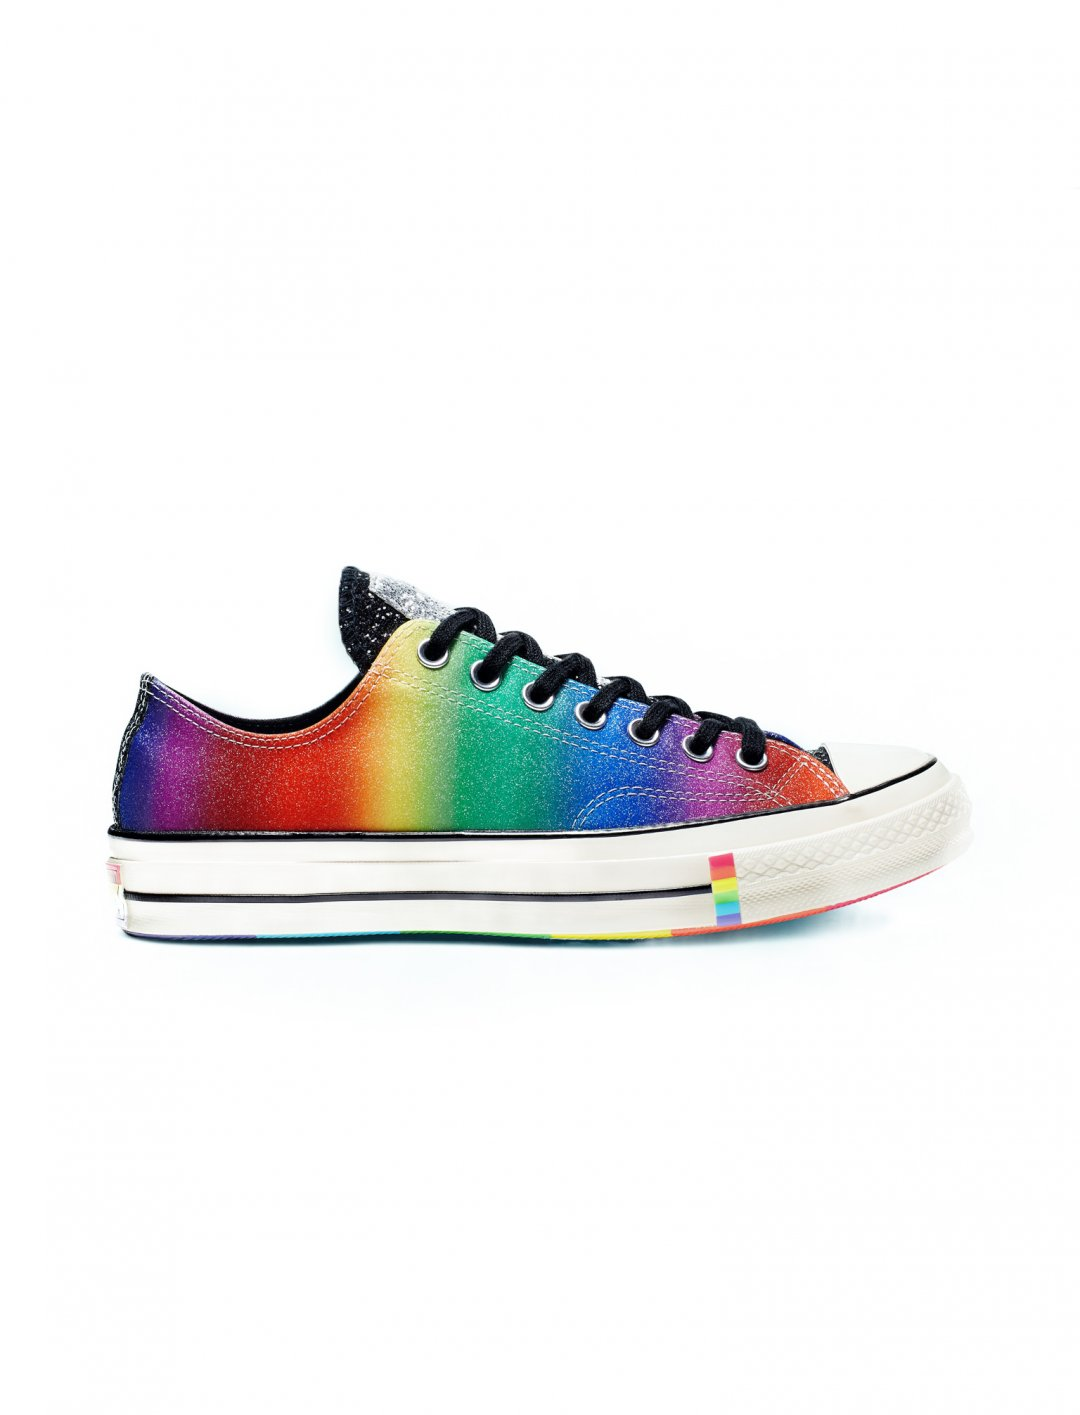 "Chuck 70 Pride Low Top {""id"":12,""product_section_id"":1,""name"":""Shoes"",""order"":12} Converse"